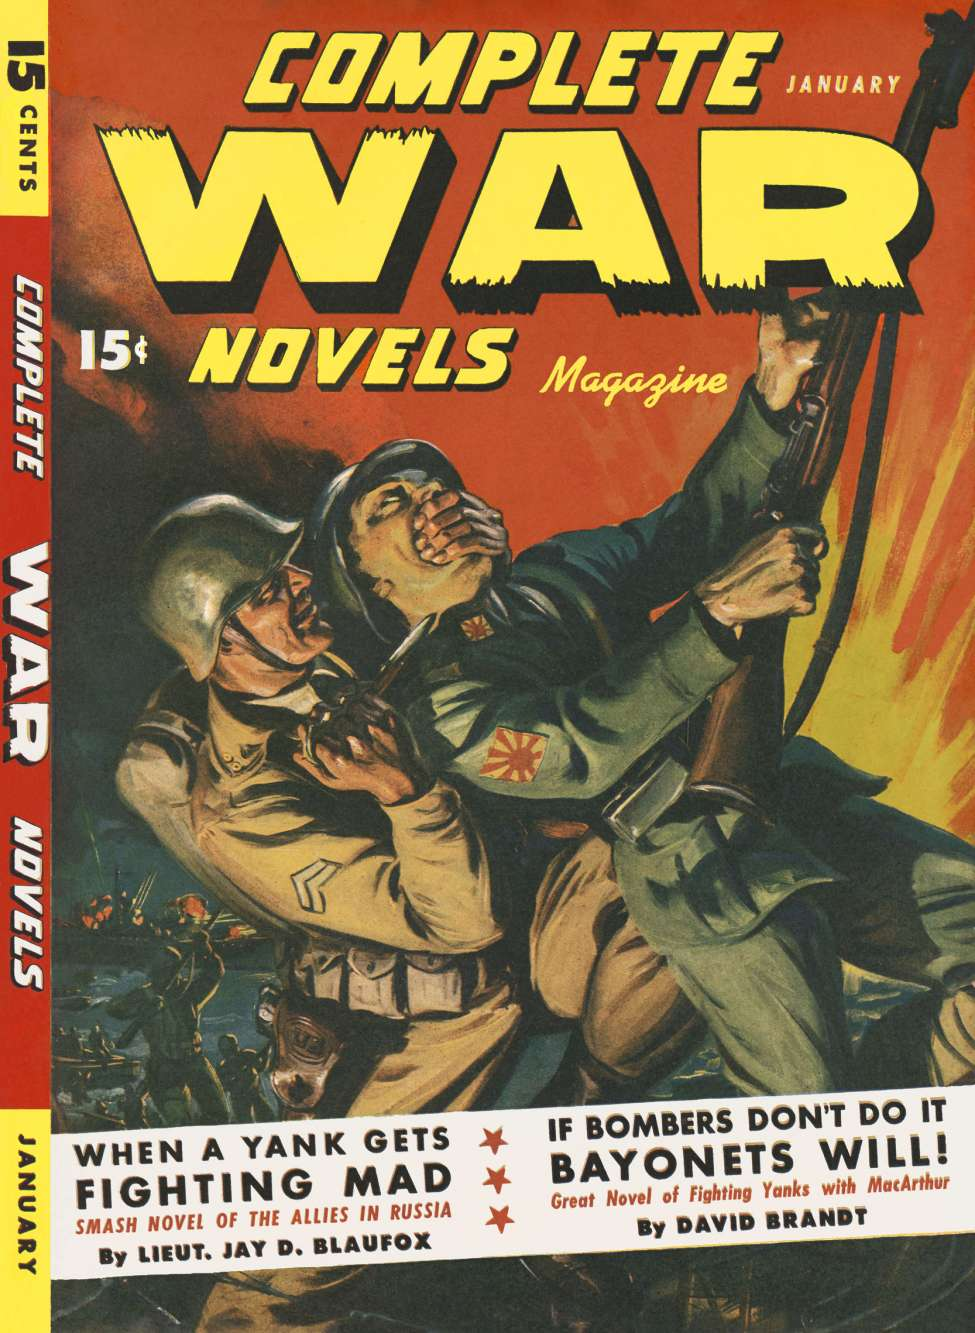 Comic Book Cover For Complete War Novels Magazine v01 03